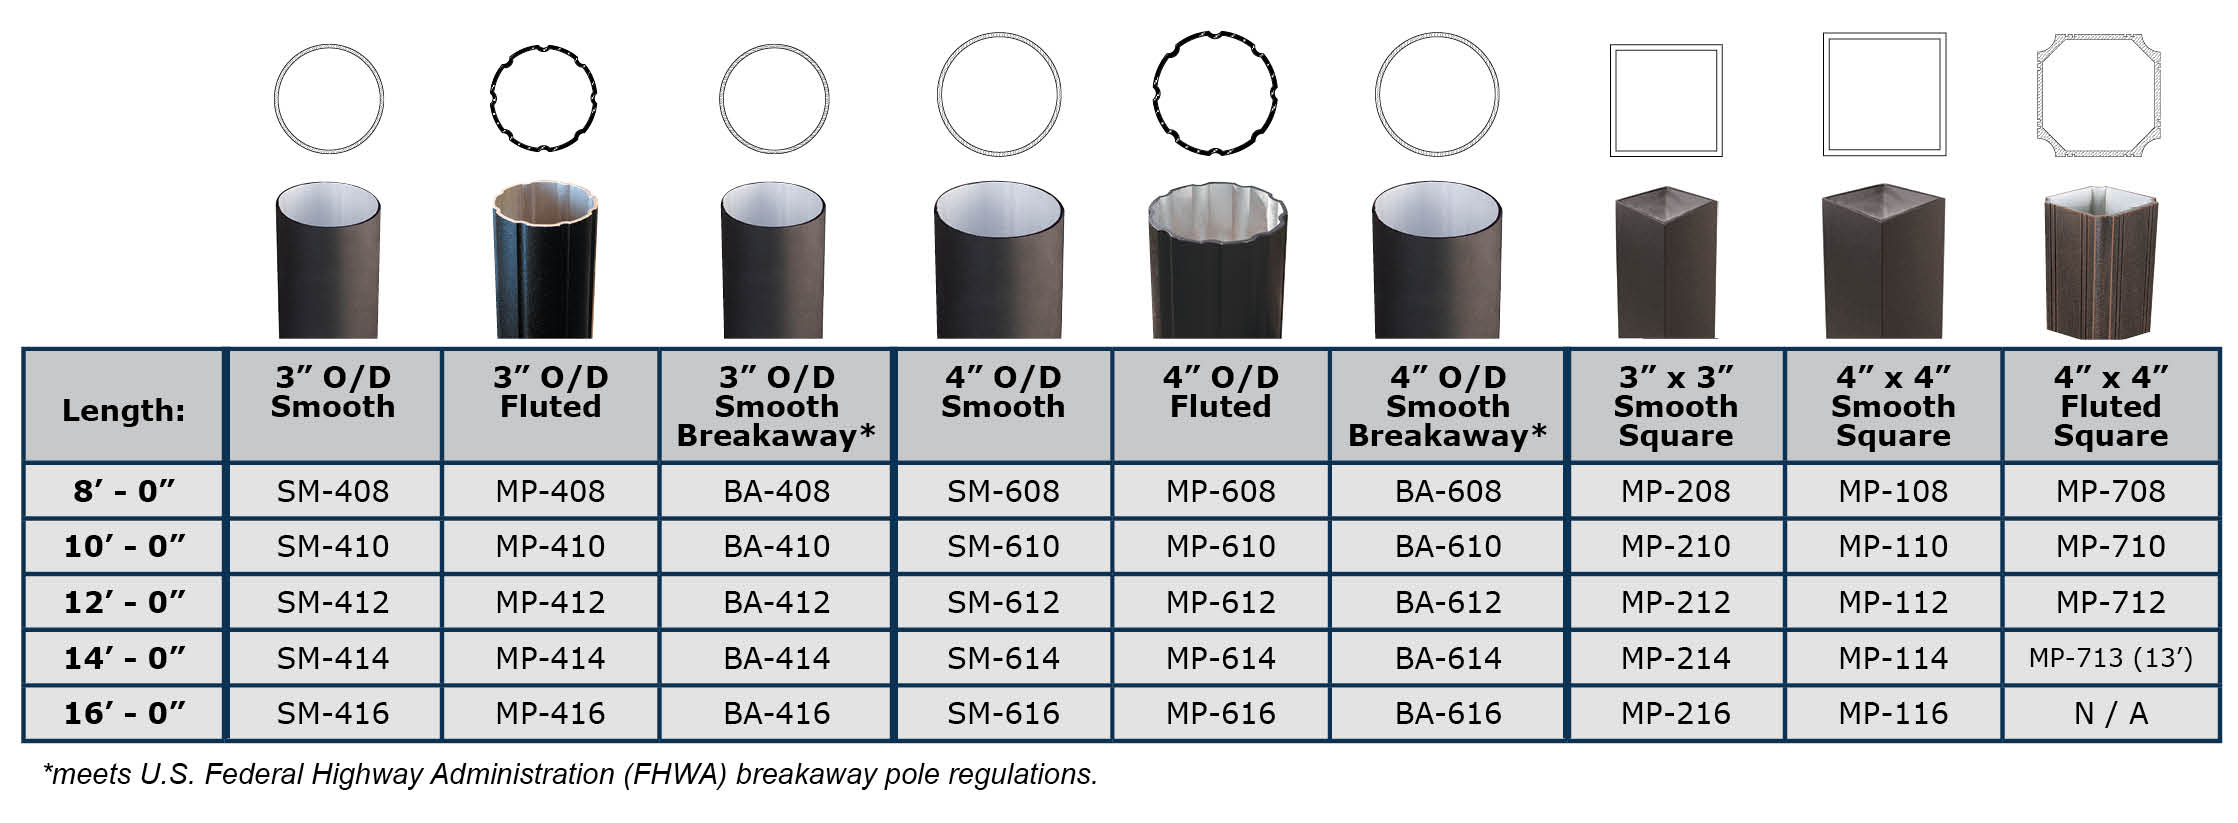 Round and square aluminum street sign pole options chart